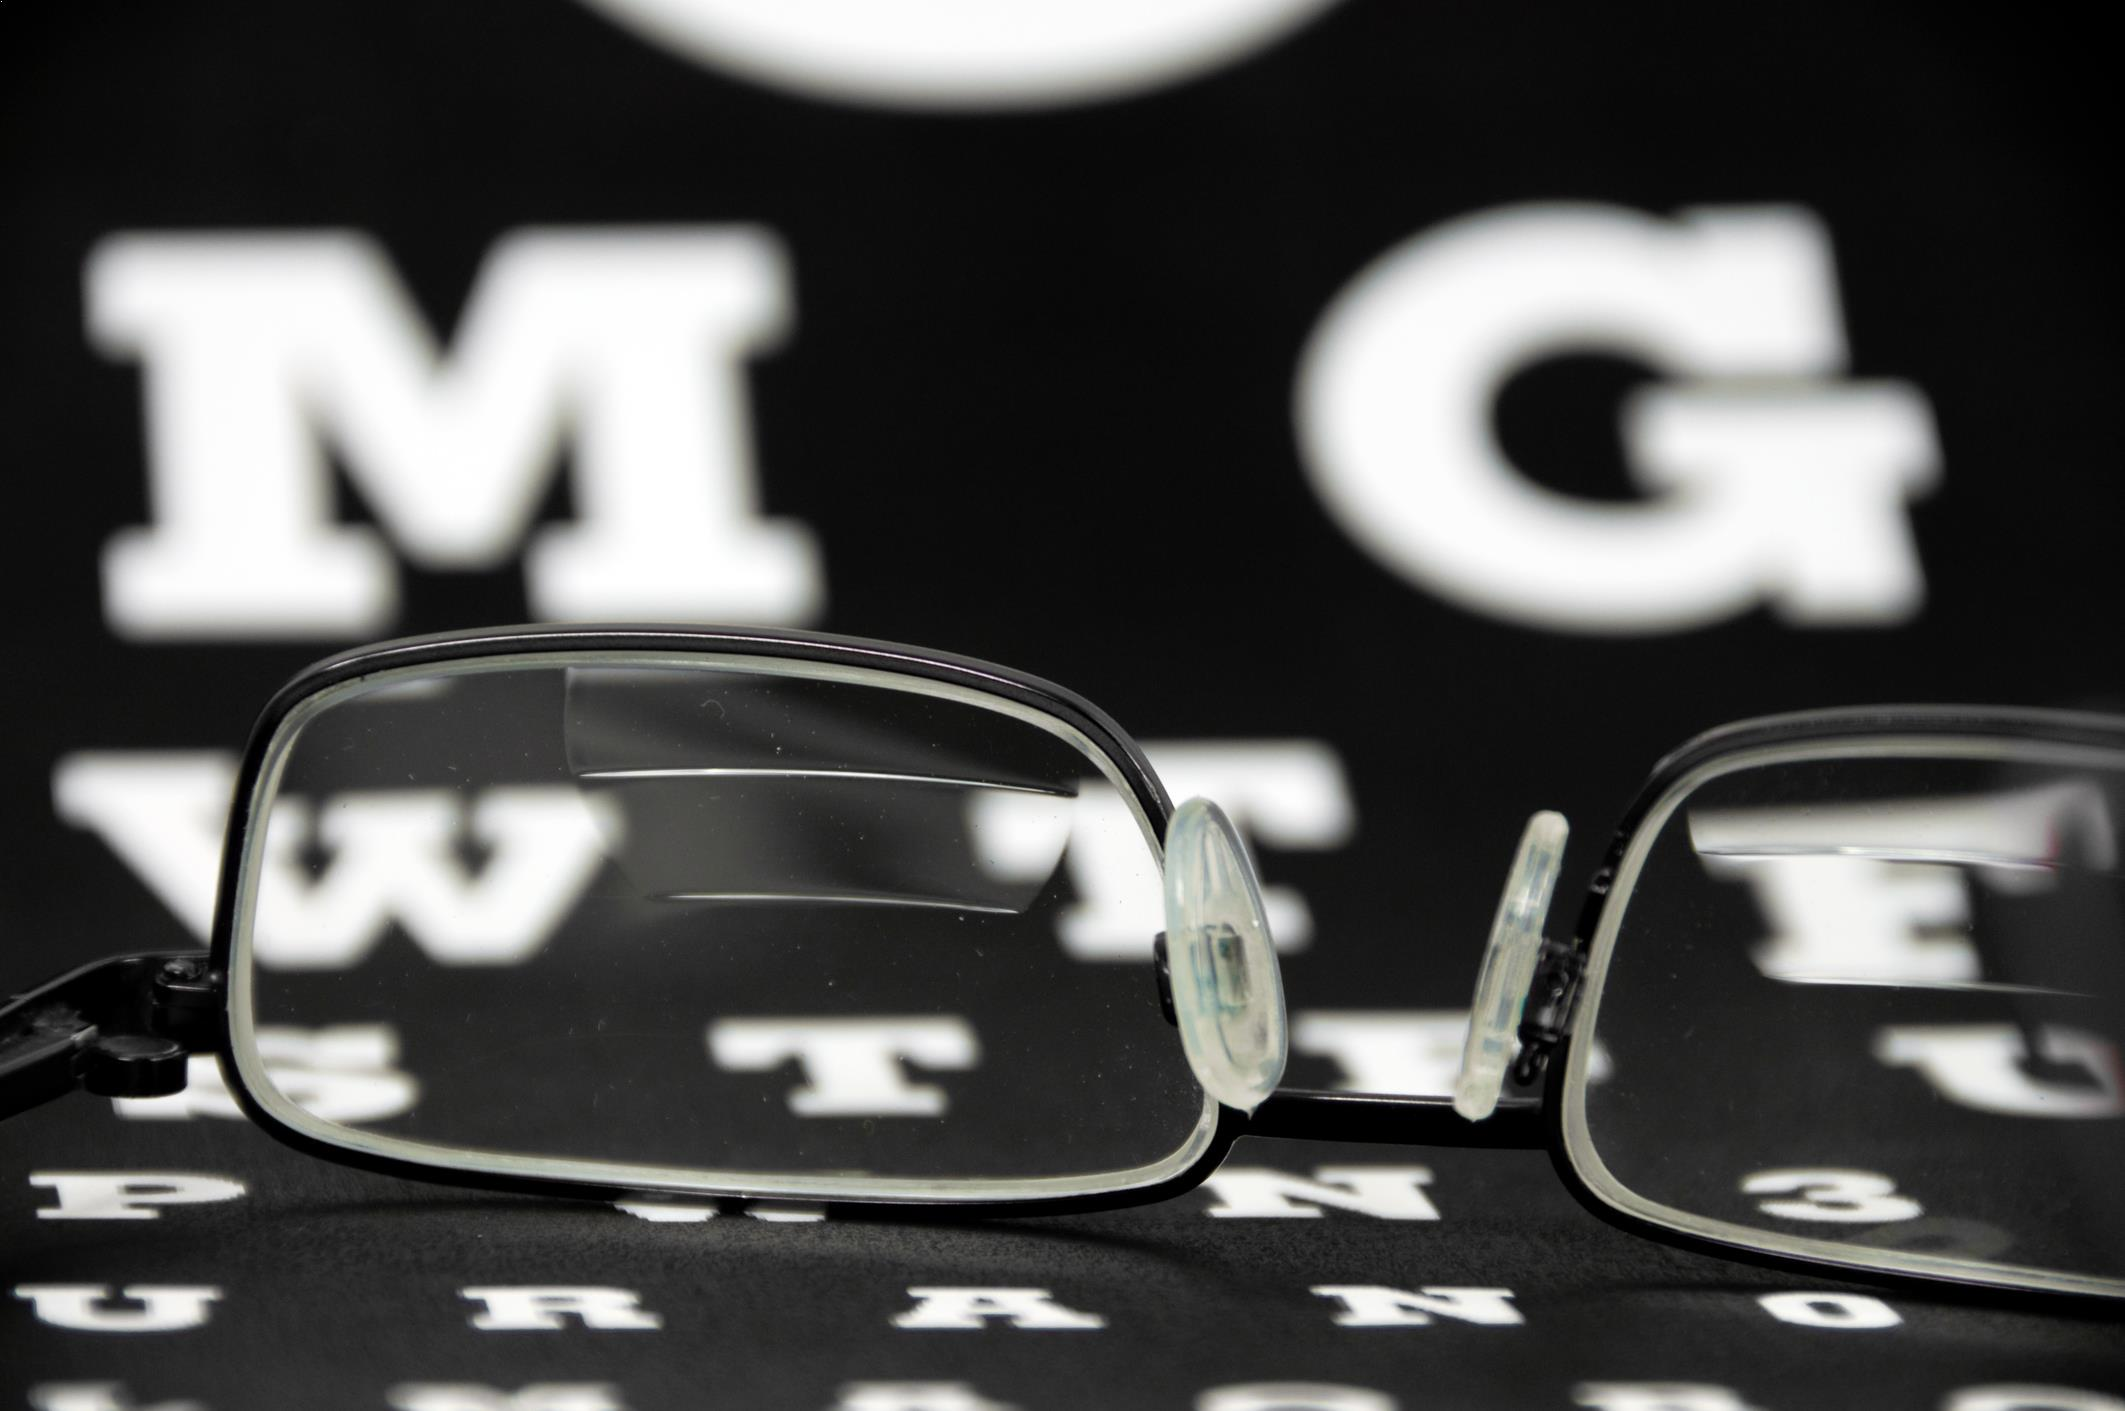 Trifocal Reading Glasses vs. Adjustable Focus: Which Are Right for You?